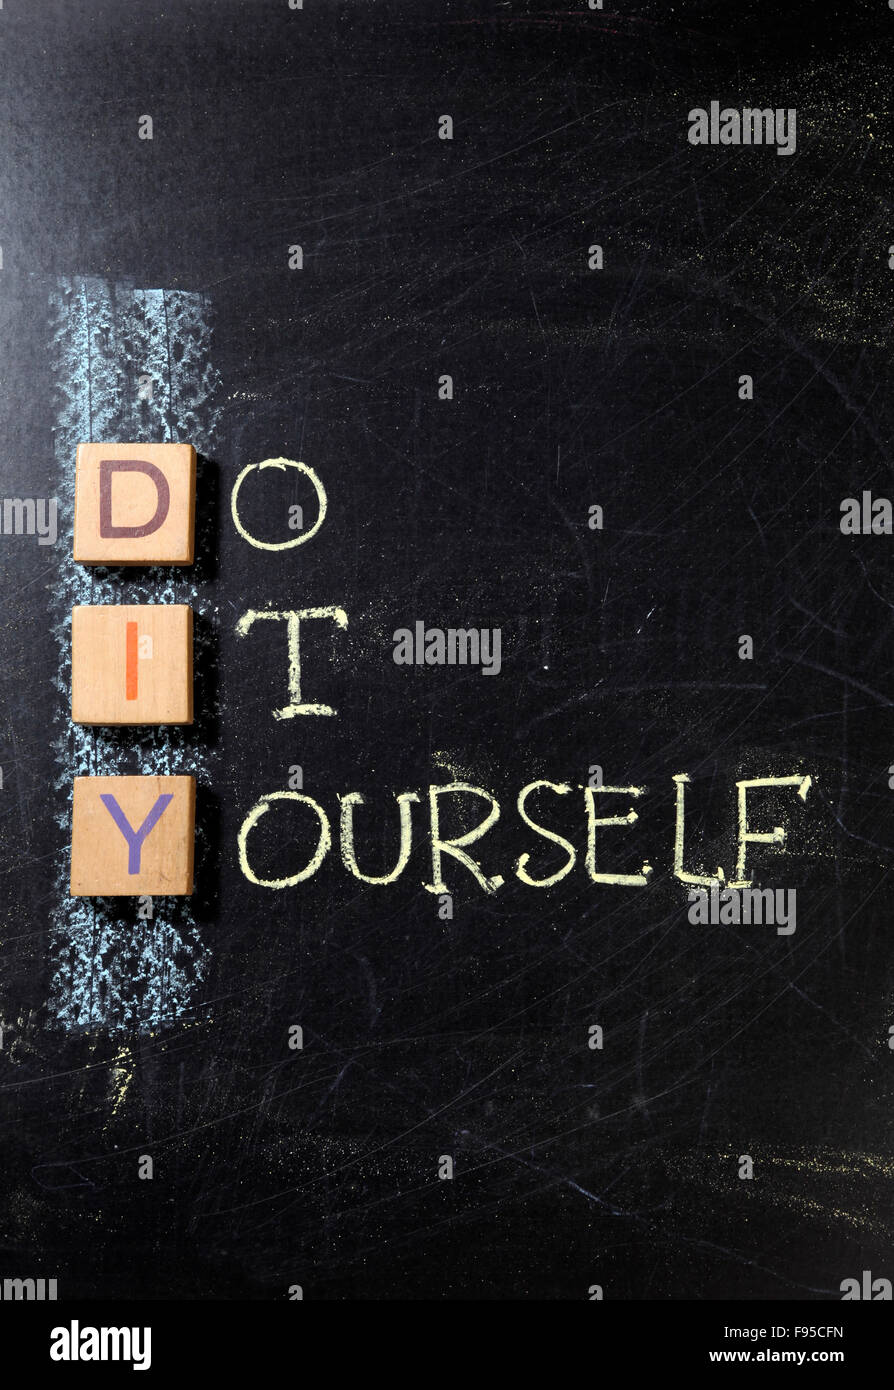 Do It Yourself (DIY), business concept acronym on blackboard - Stock Image